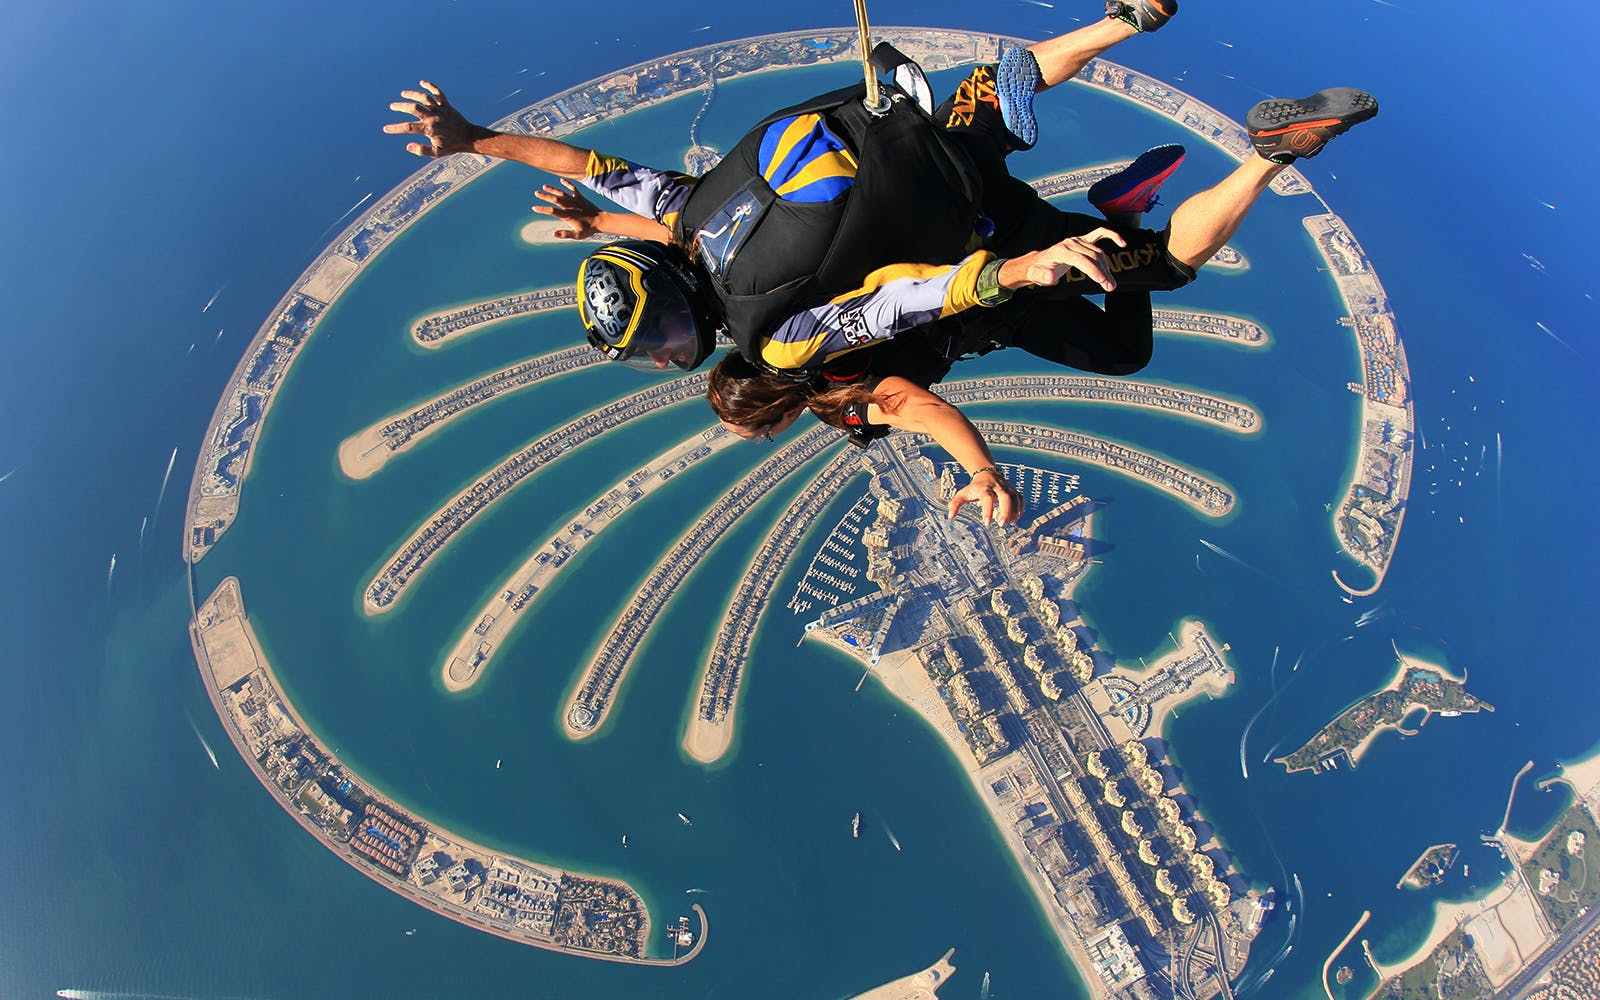 Dubai skydiving - palm drop zone